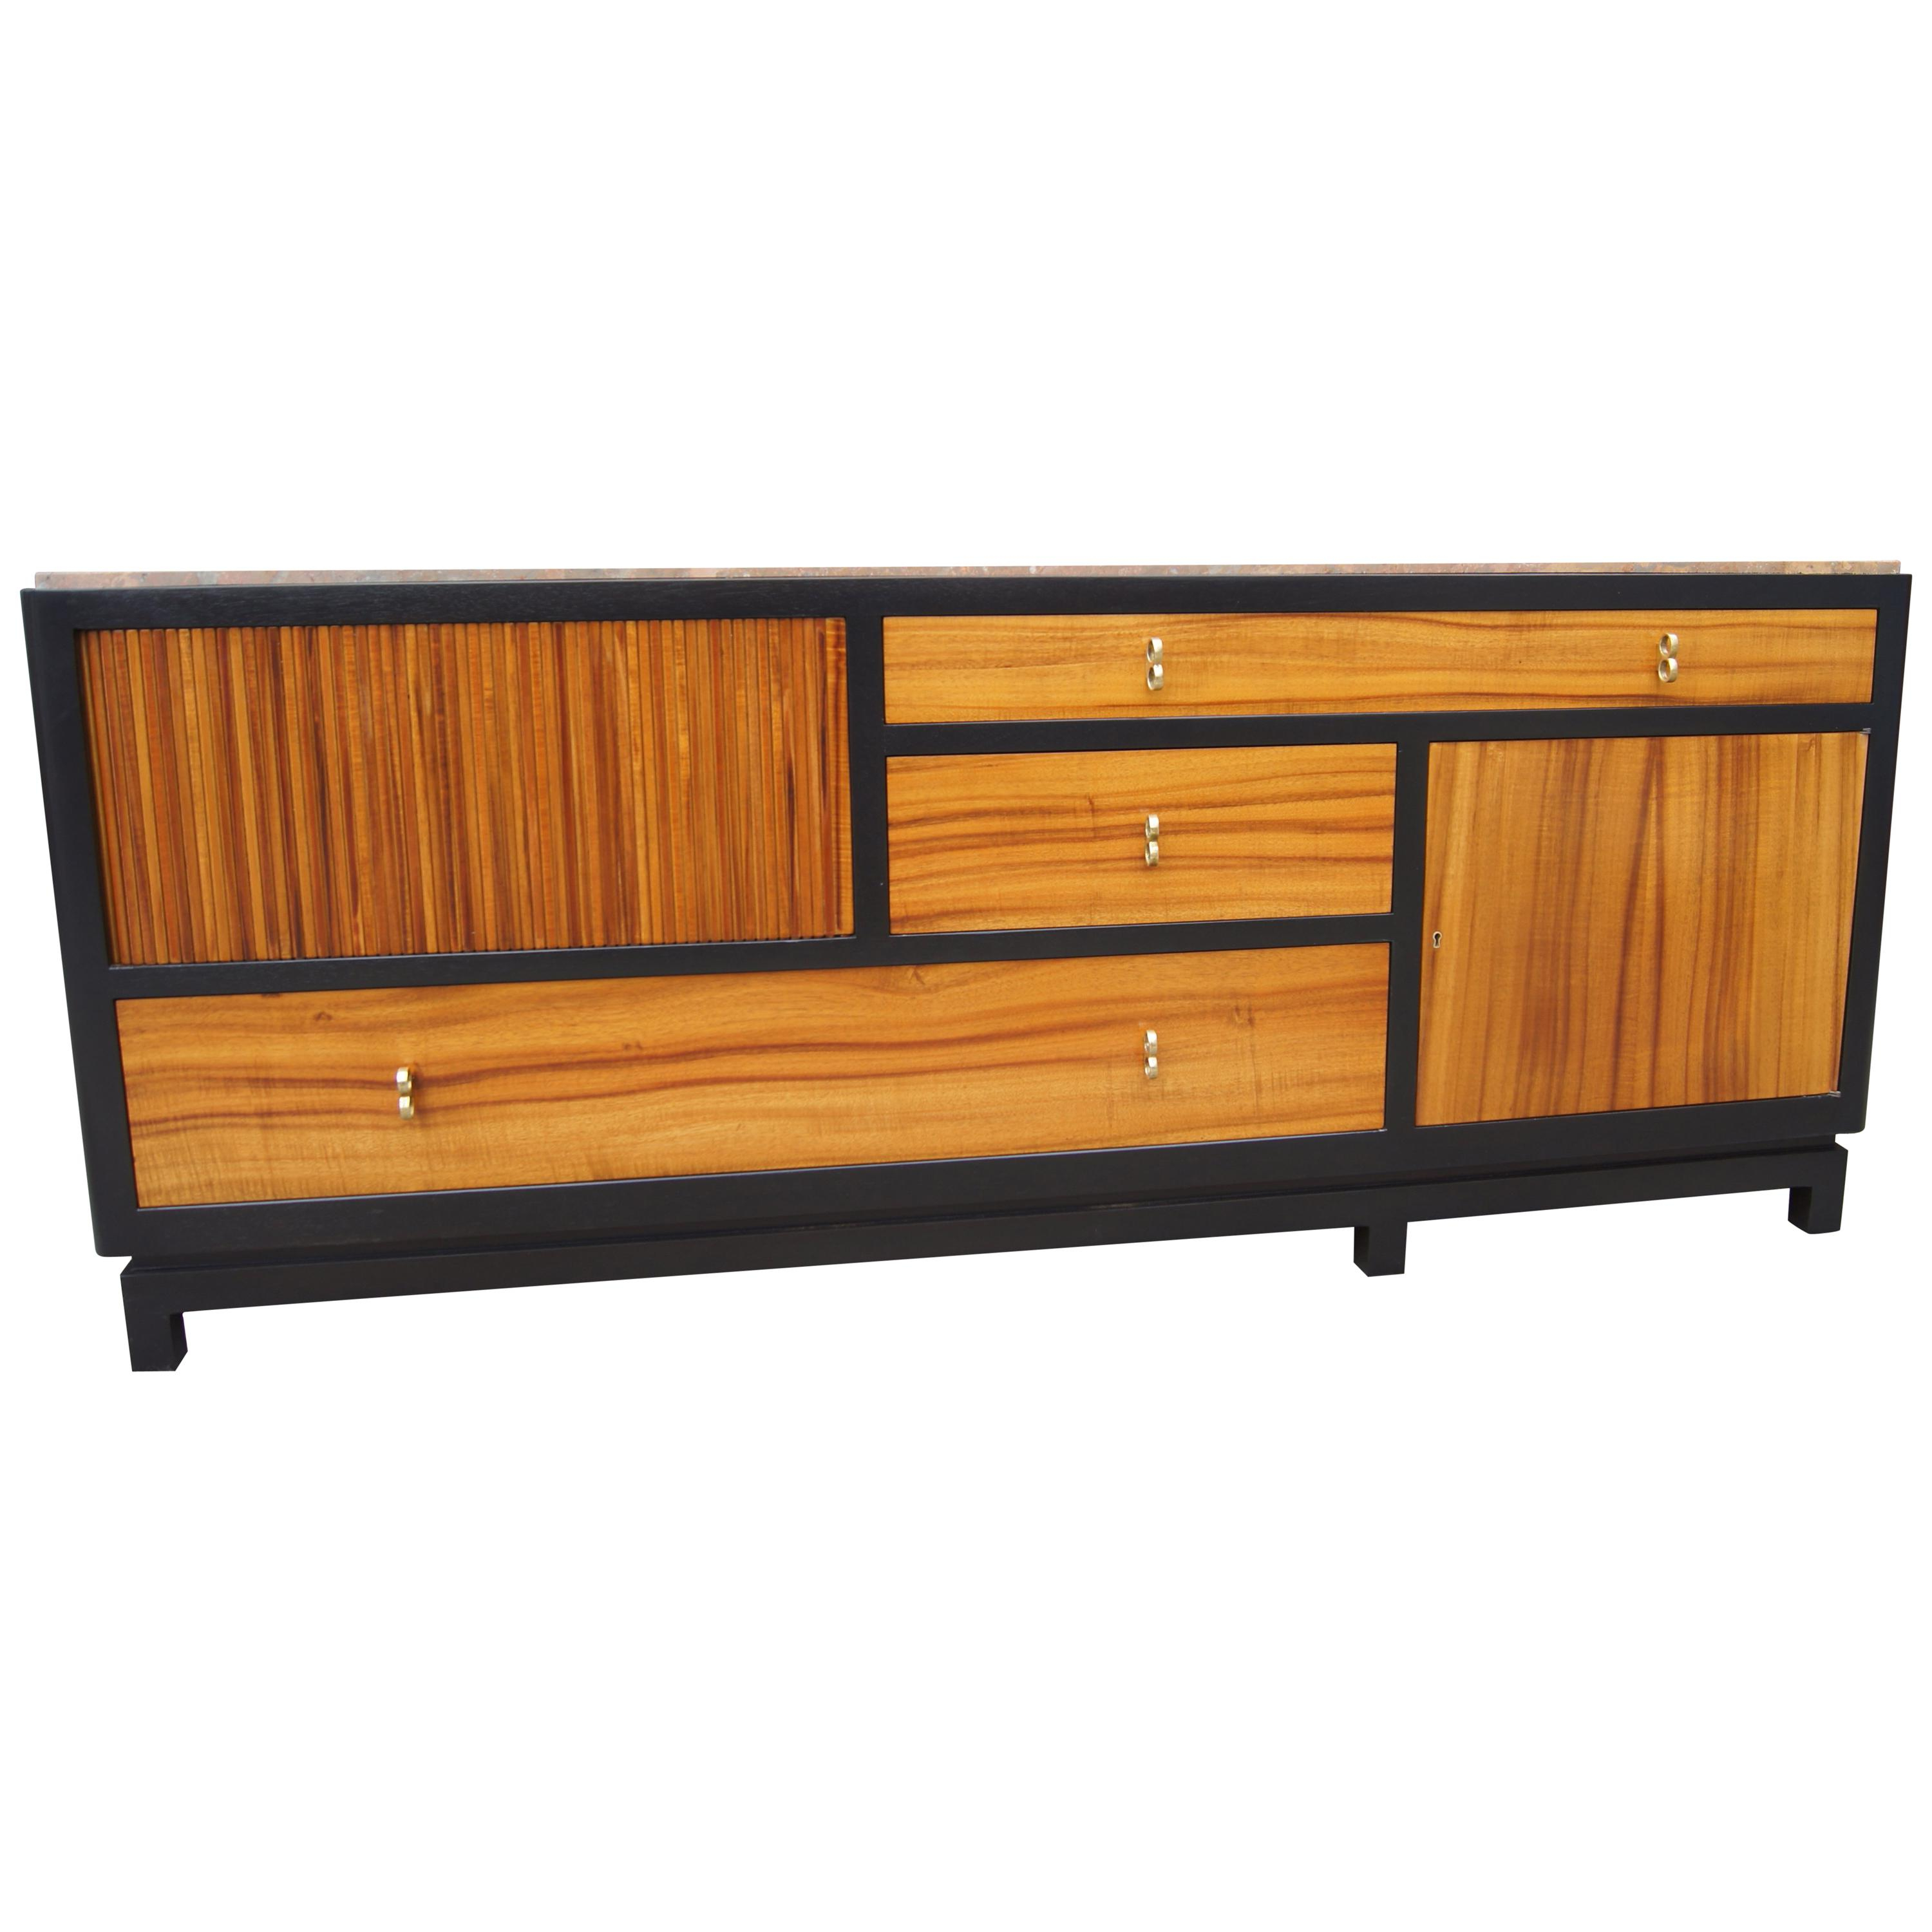 Edward Wormley Sideboards – 38 For Sale At 1stdibs Throughout Gertrude Sideboards (View 15 of 20)